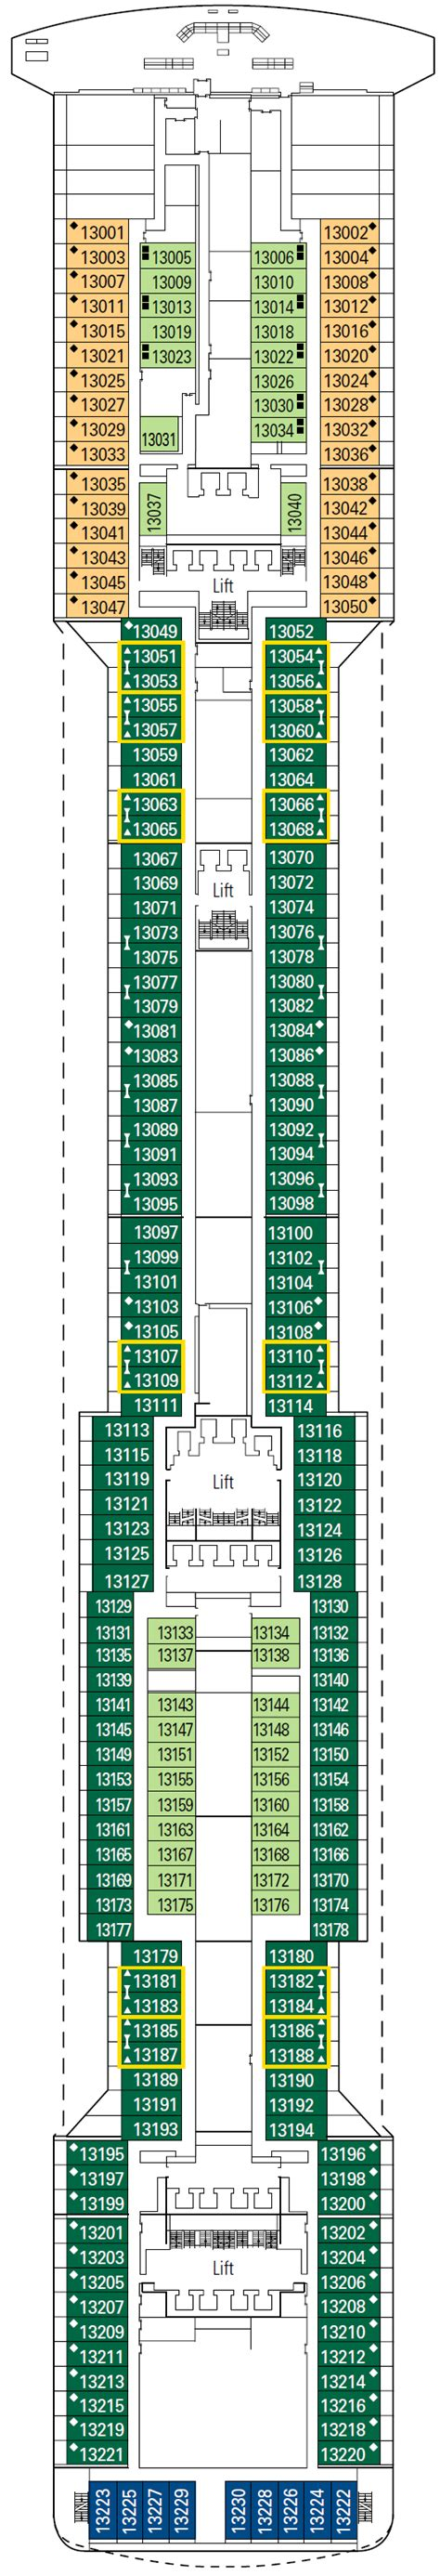 Msc Divina Deck Plan 11 by Msc Divina Cruises Great Deals On Cruises With Cruiseabout